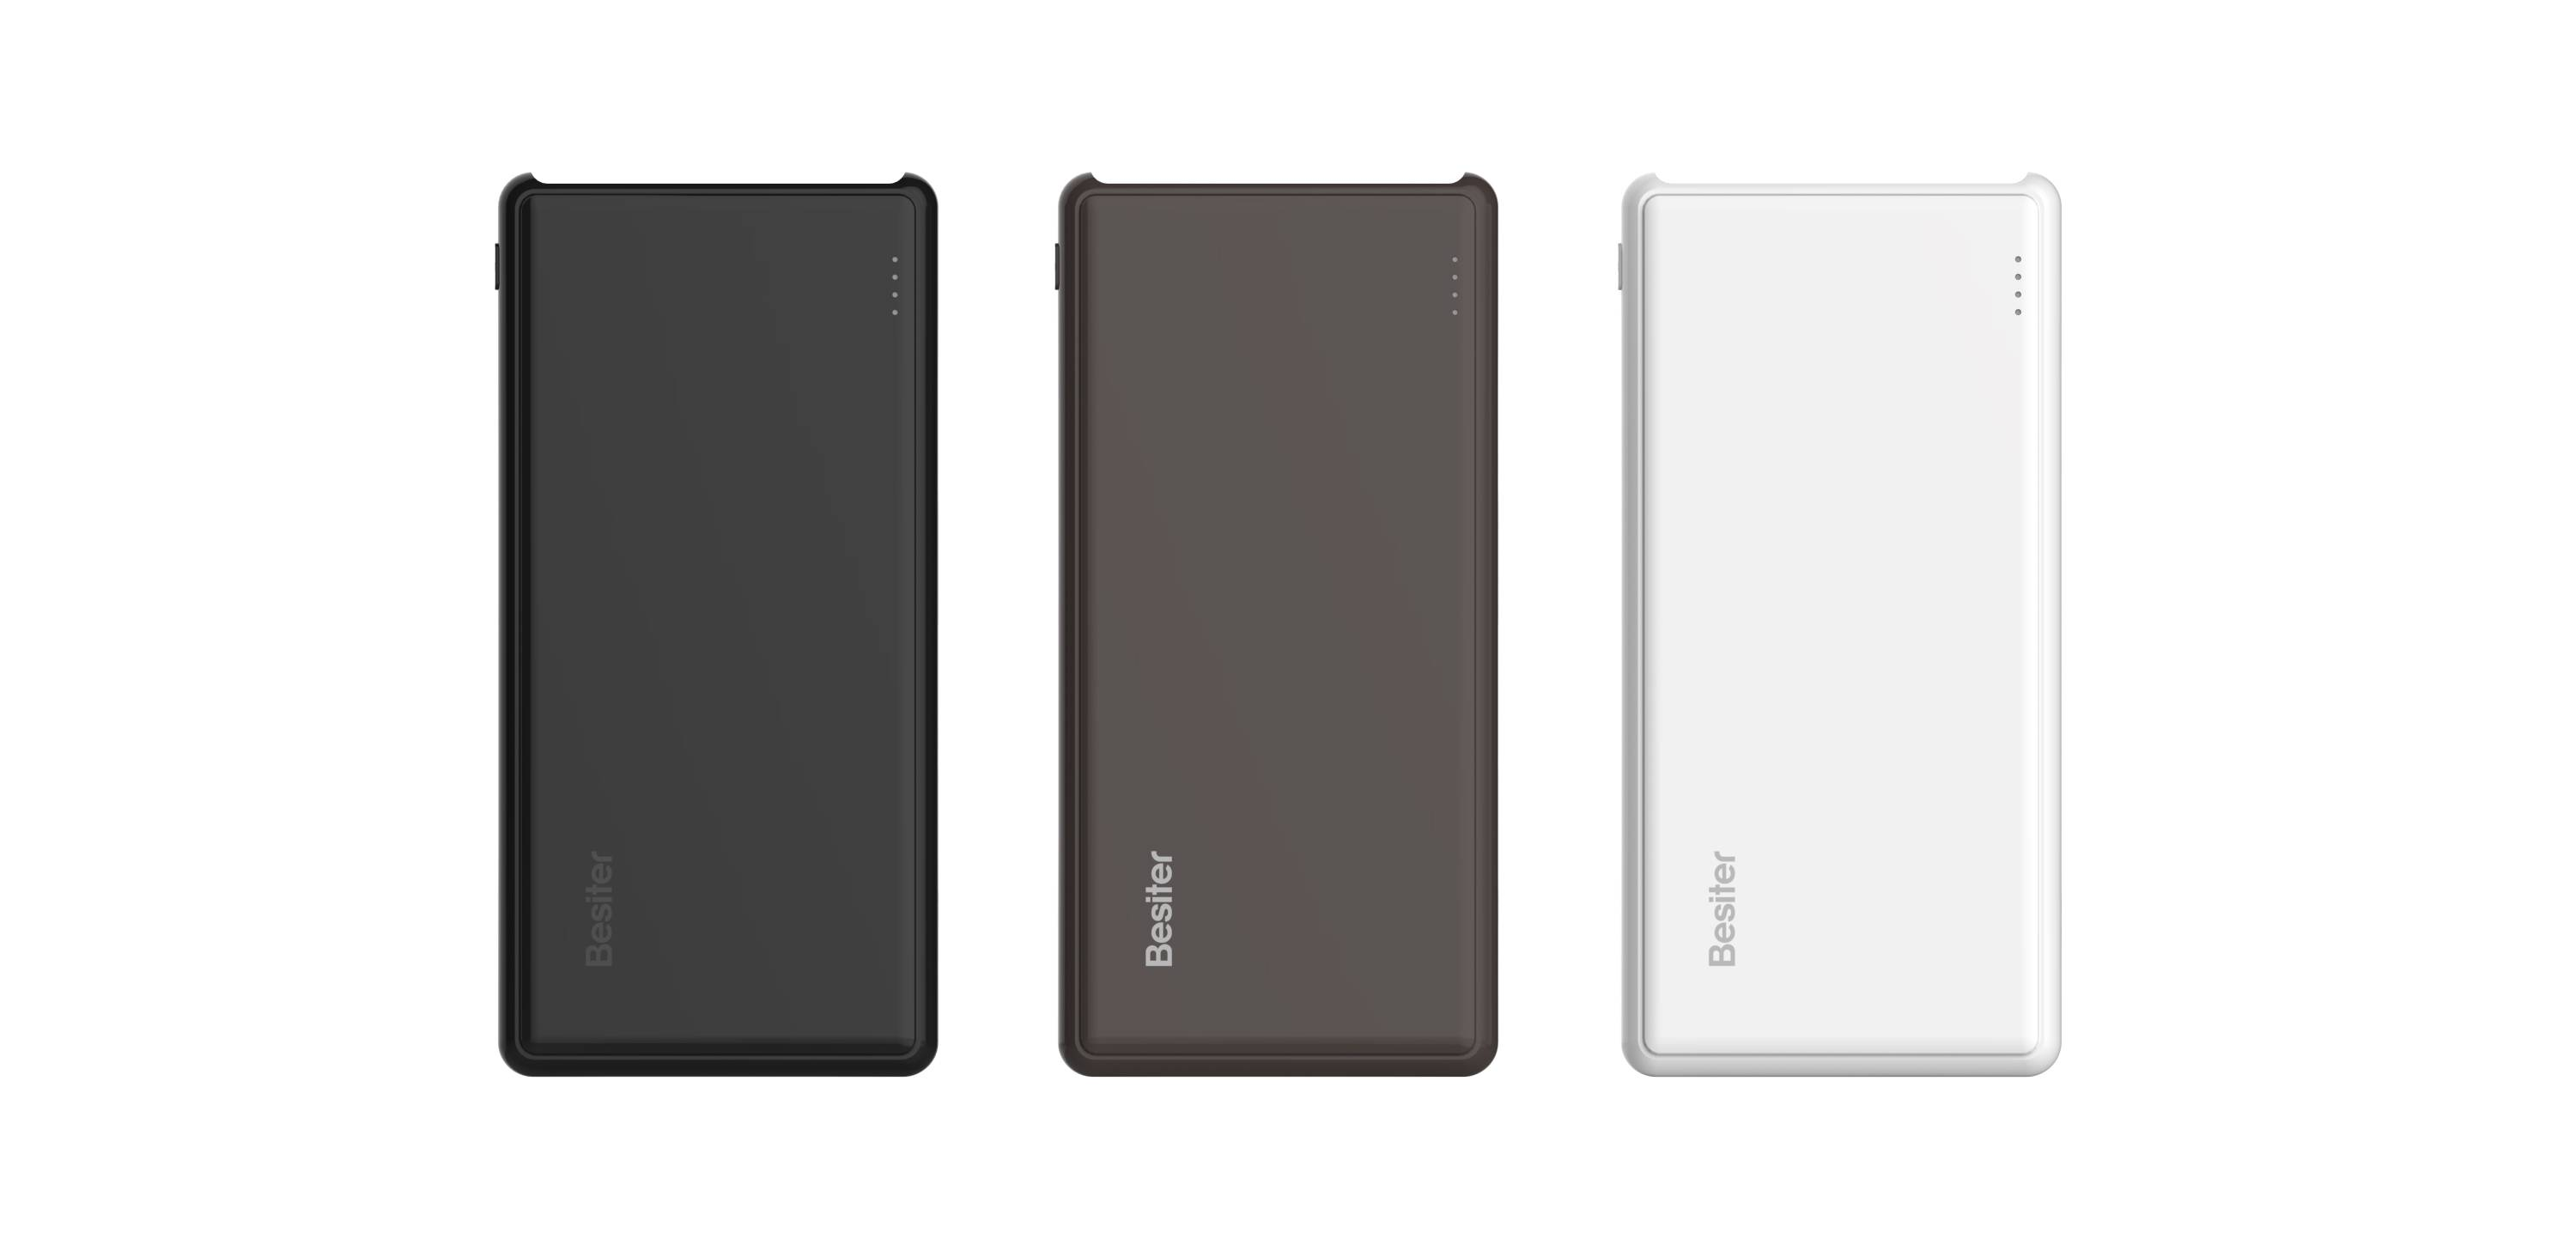 Slim Portable Power Bank with 10000 mAh Capacity